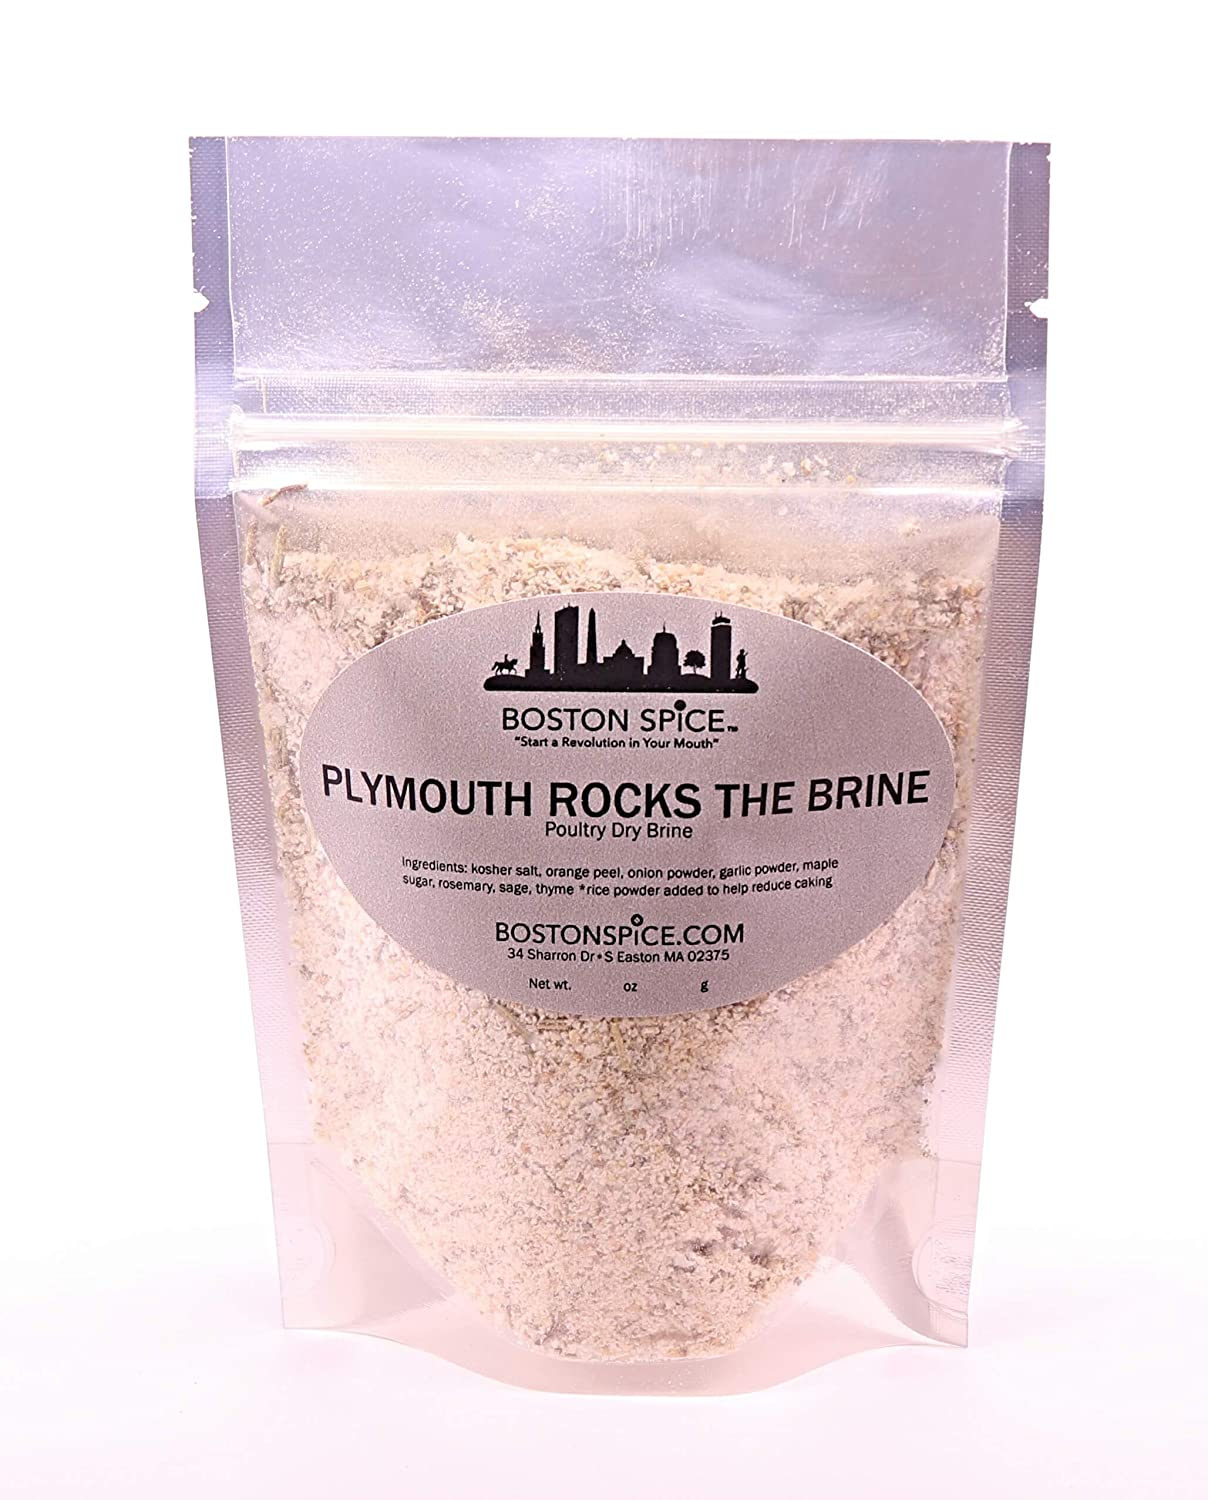 Boston Spice Plymouth Rocks The Brine Needed Dry Handma No Water Mail order Bombing new work